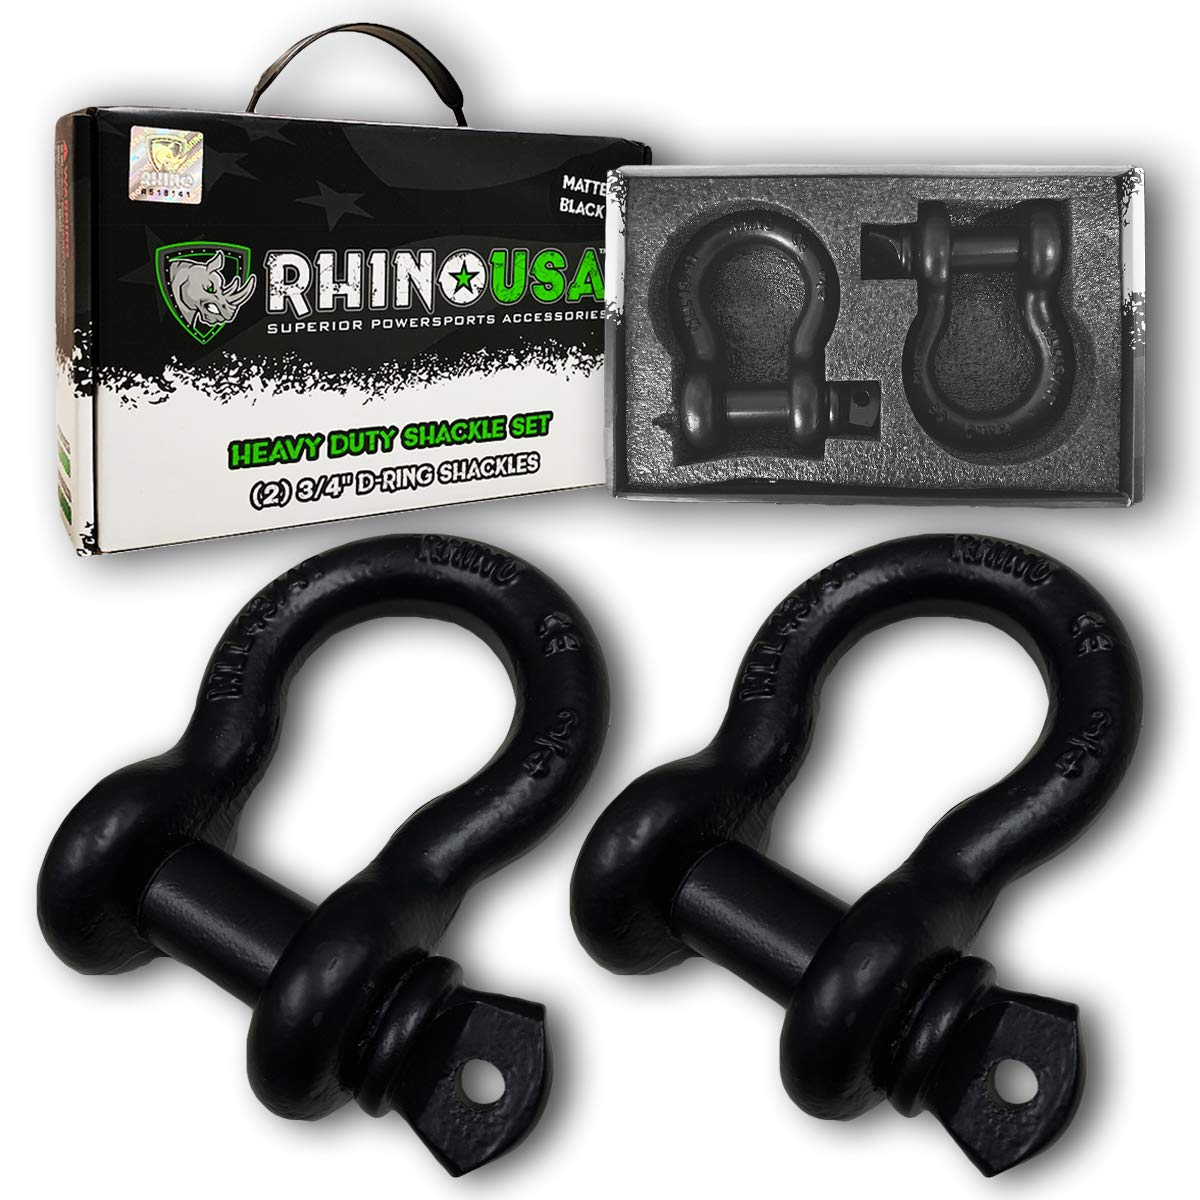 20ft Lab Tested 31,518lb Break Strength Triple Reinforced Loop End to Ensure Peace of Mind RHINO USA COMBO Recovery Tow Strap /& D Ring Shackles Heavy Duty Draw String bag Included